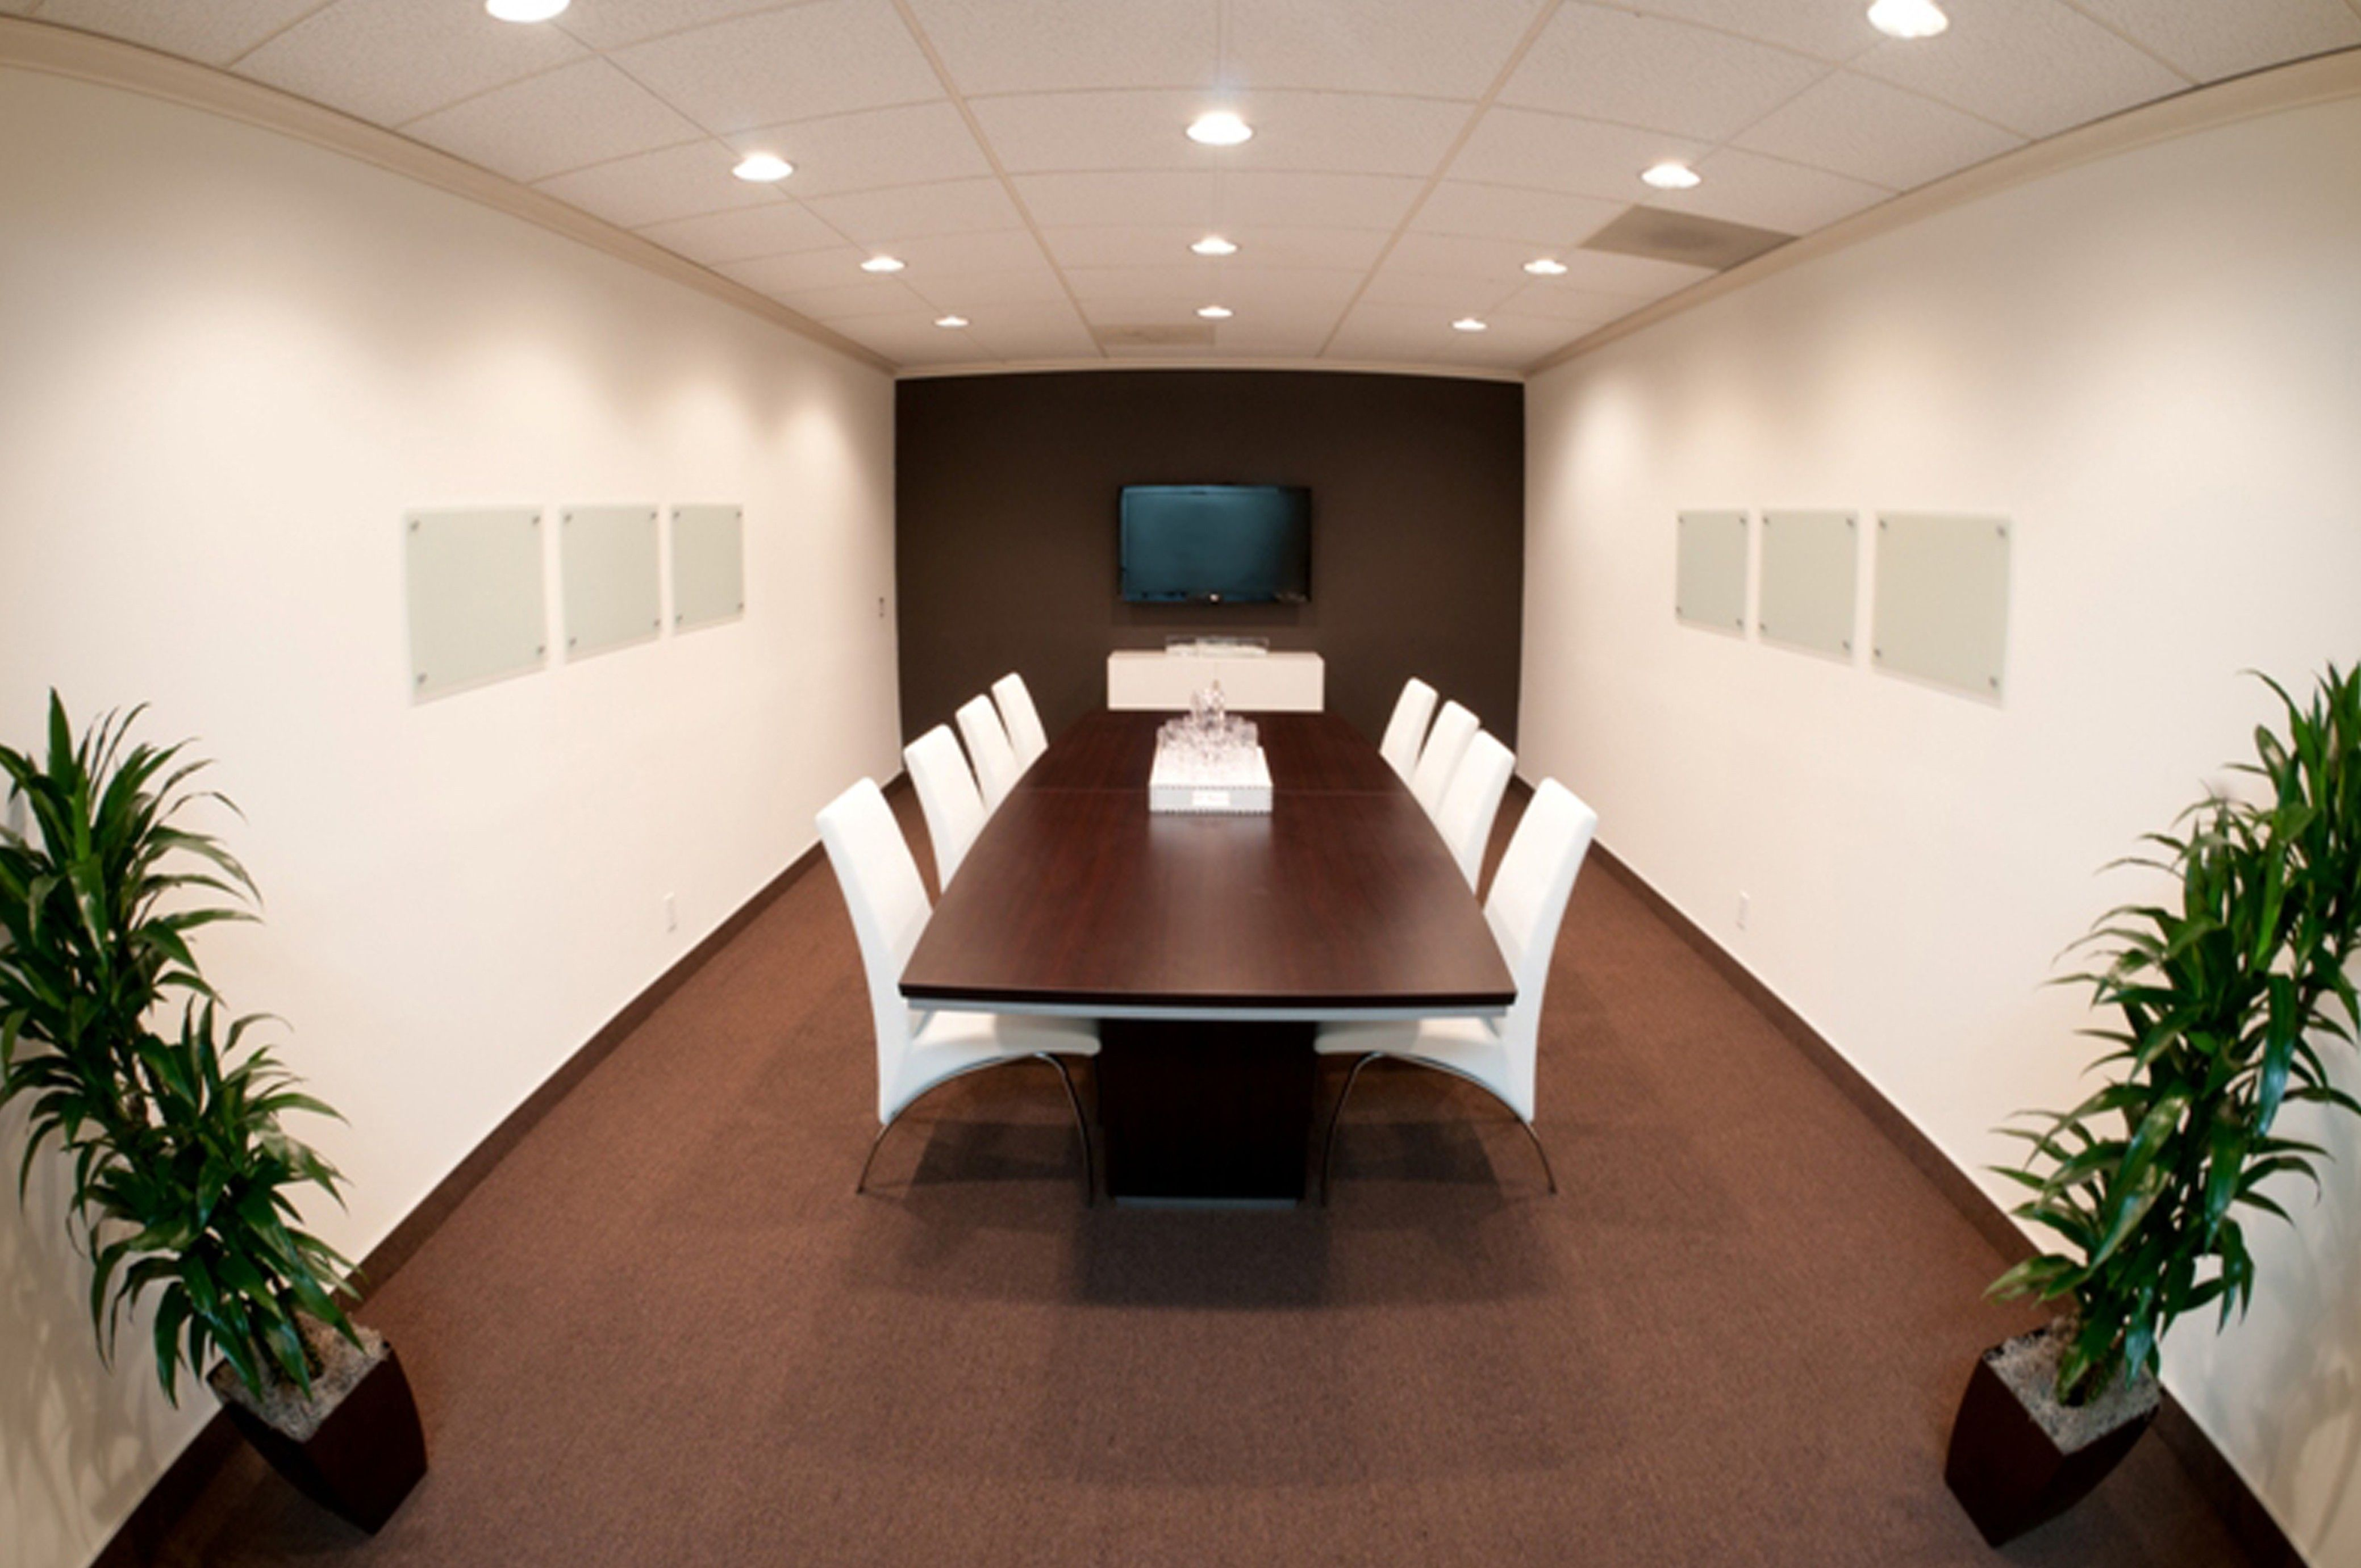 cool conference room ideas | Design Ideas | Pinterest | Conference ...